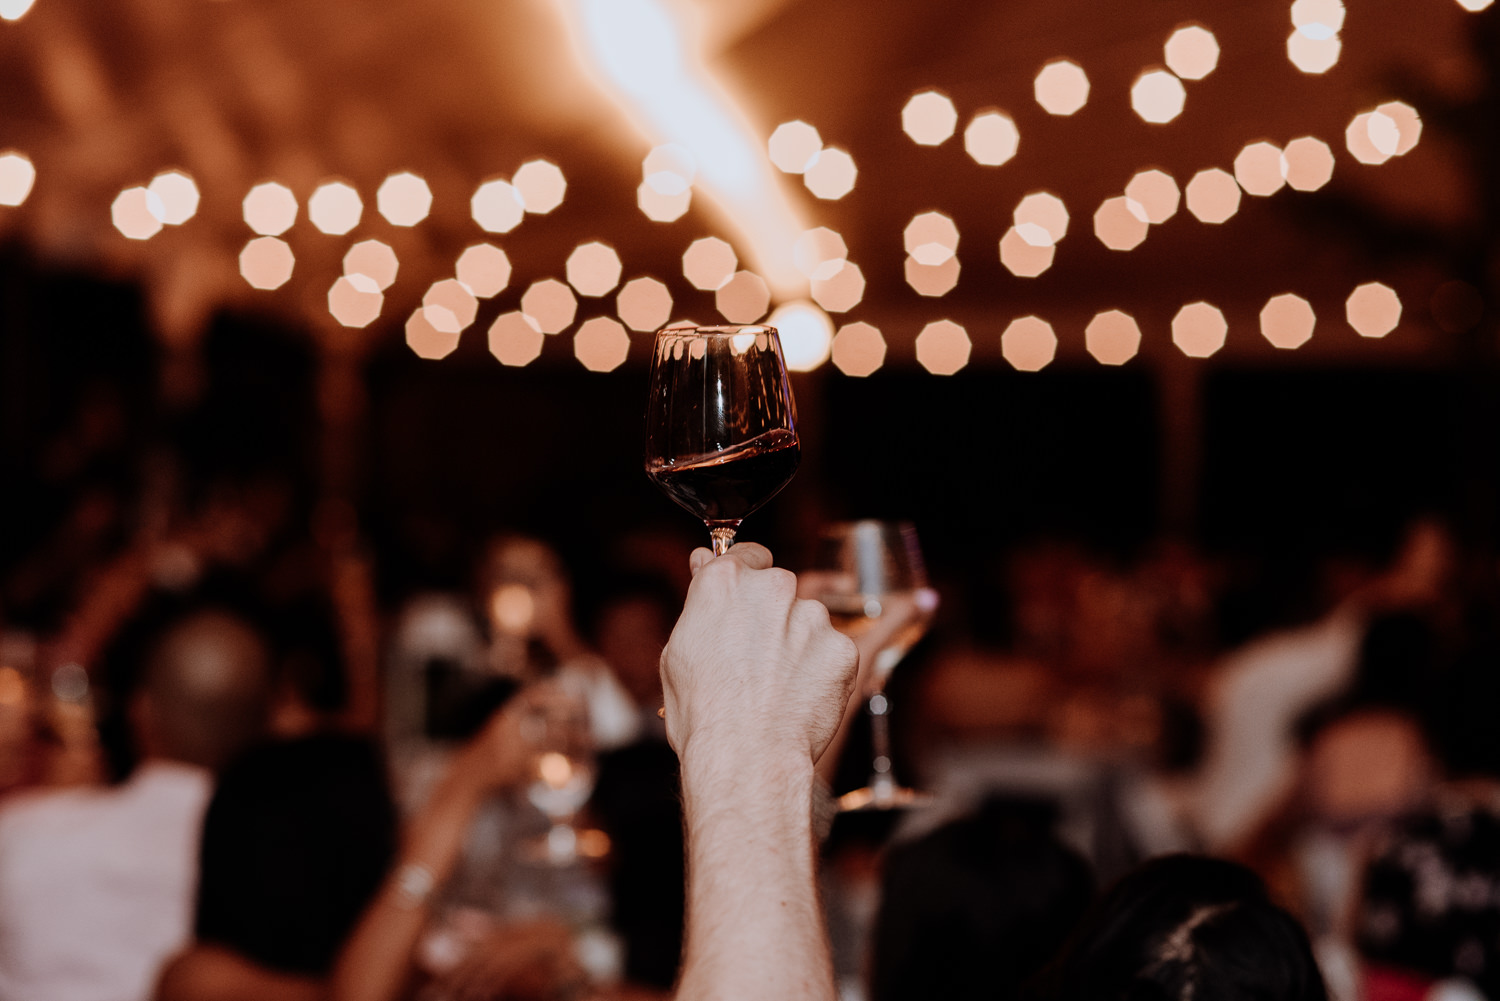 wine glass in air for wedding toasts